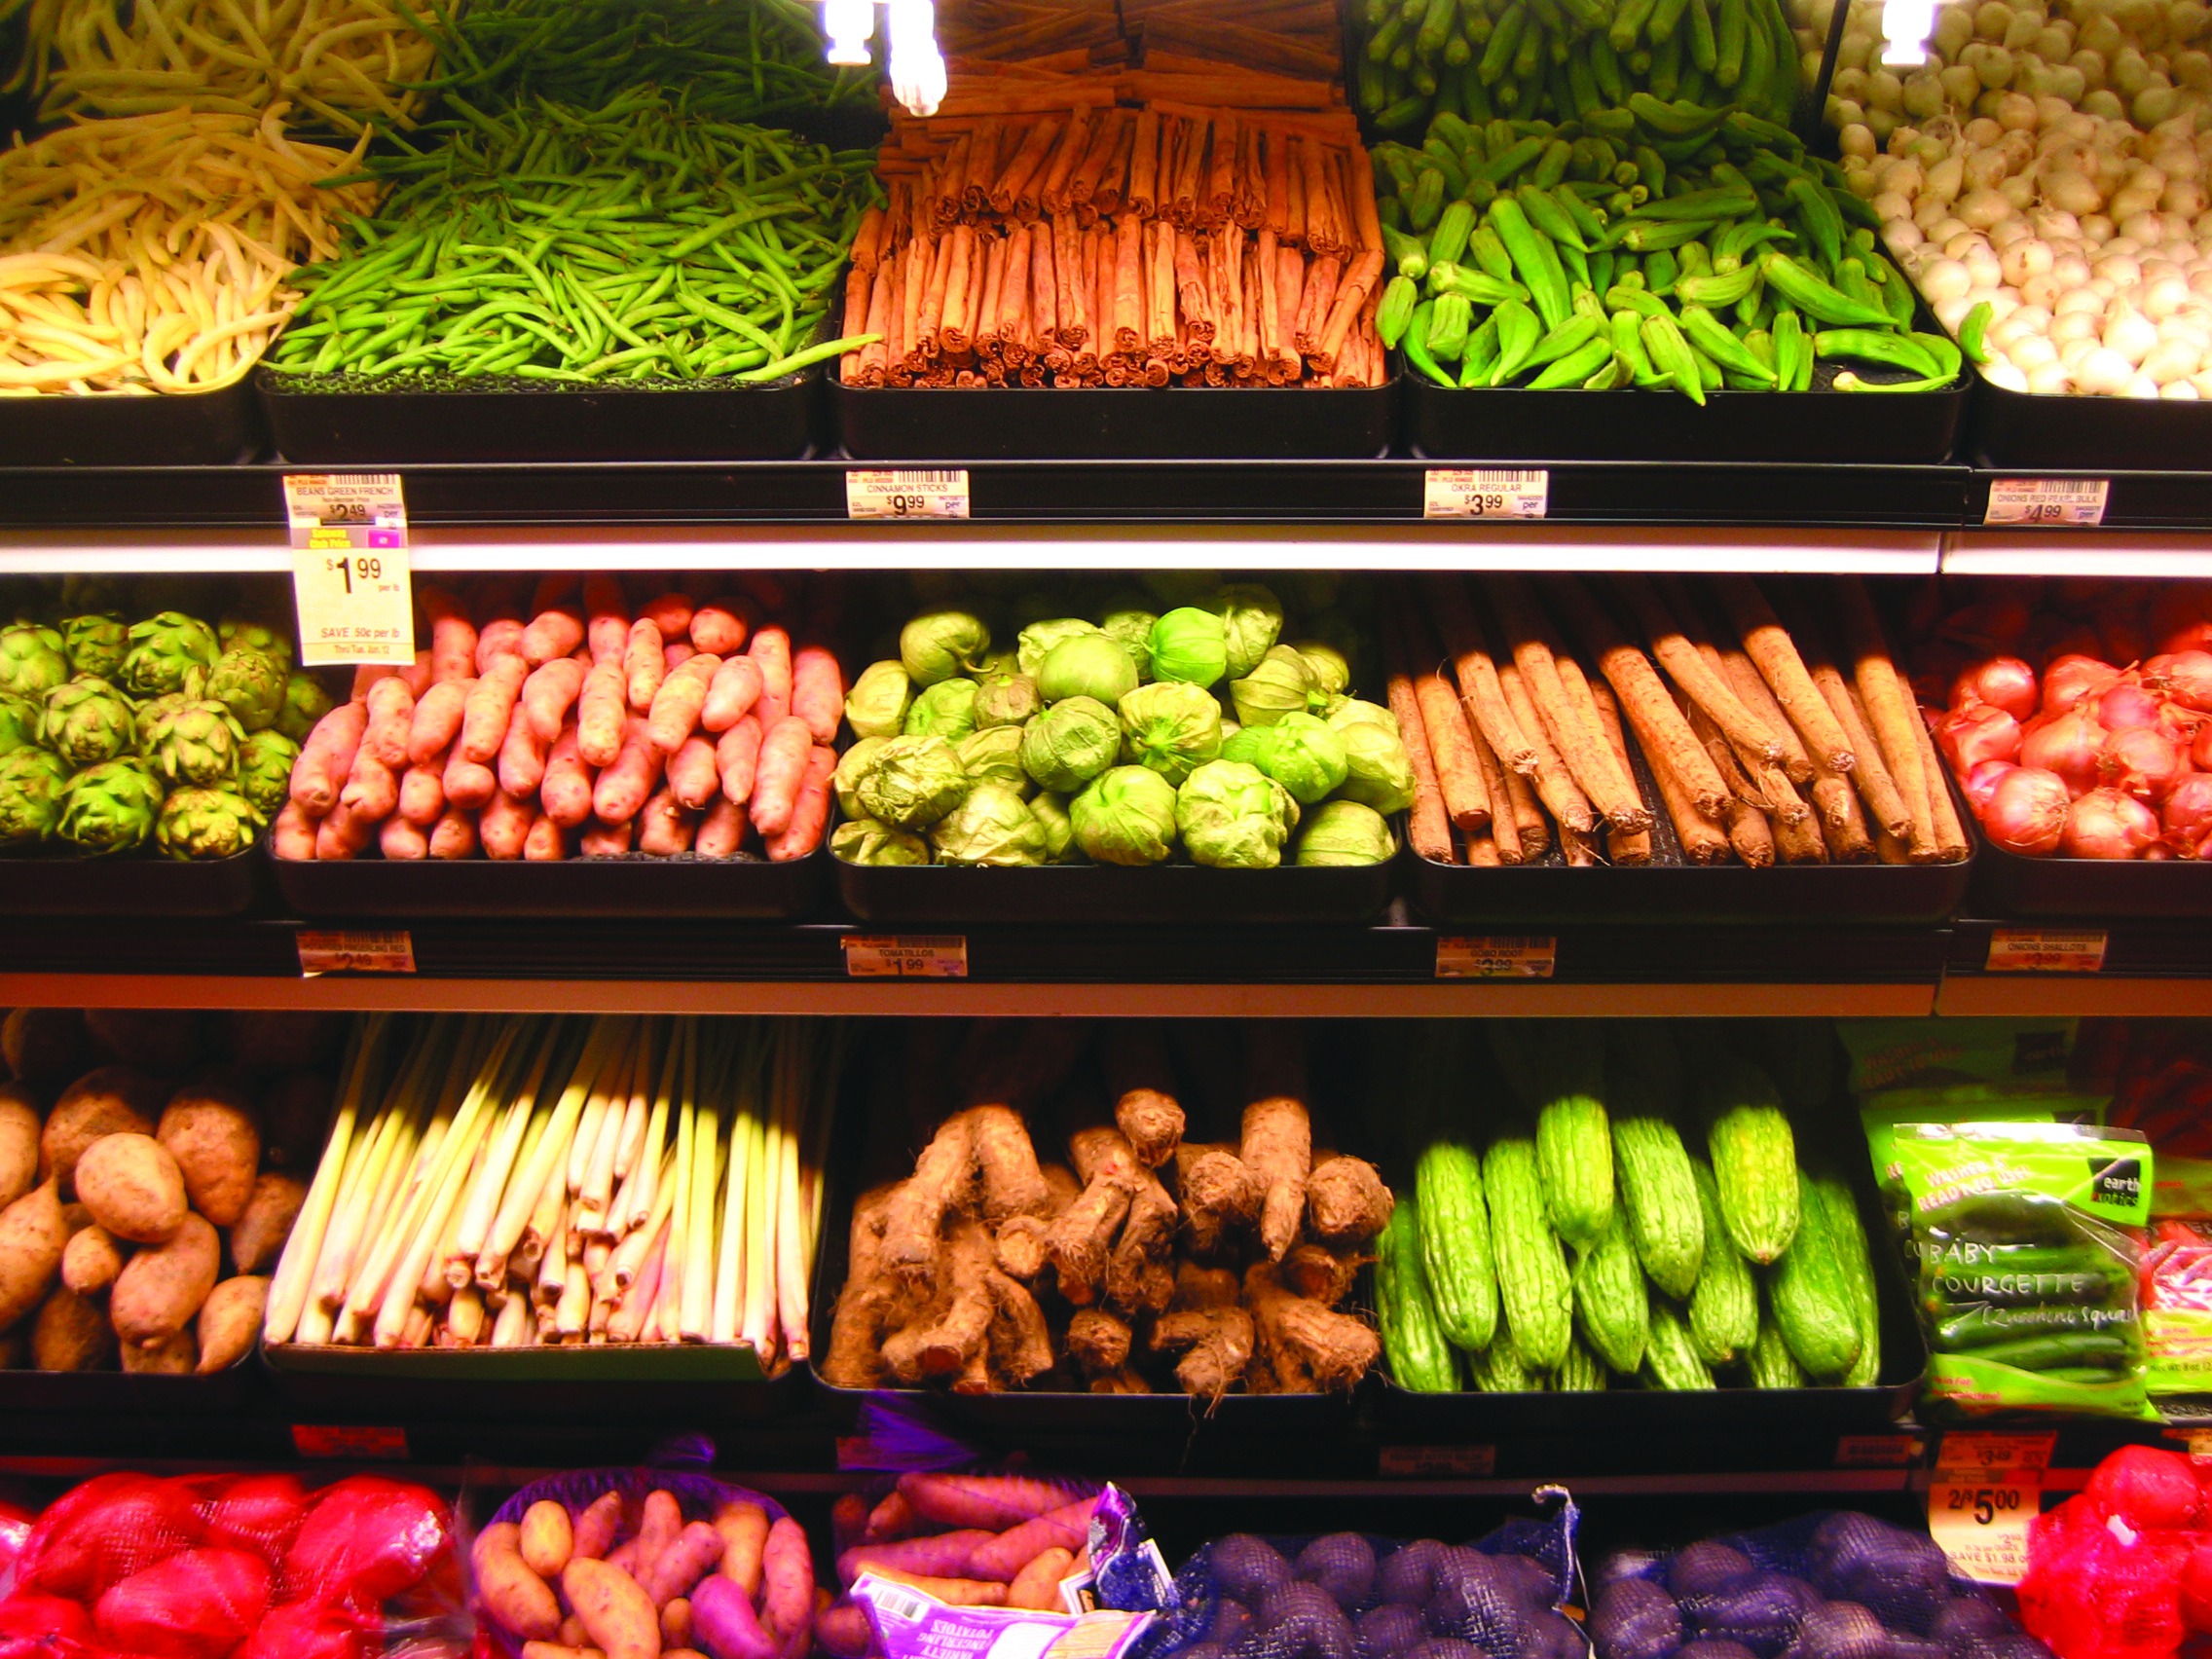 """""""Produce"""" by Rick is licensed under CC BY 2.0"""